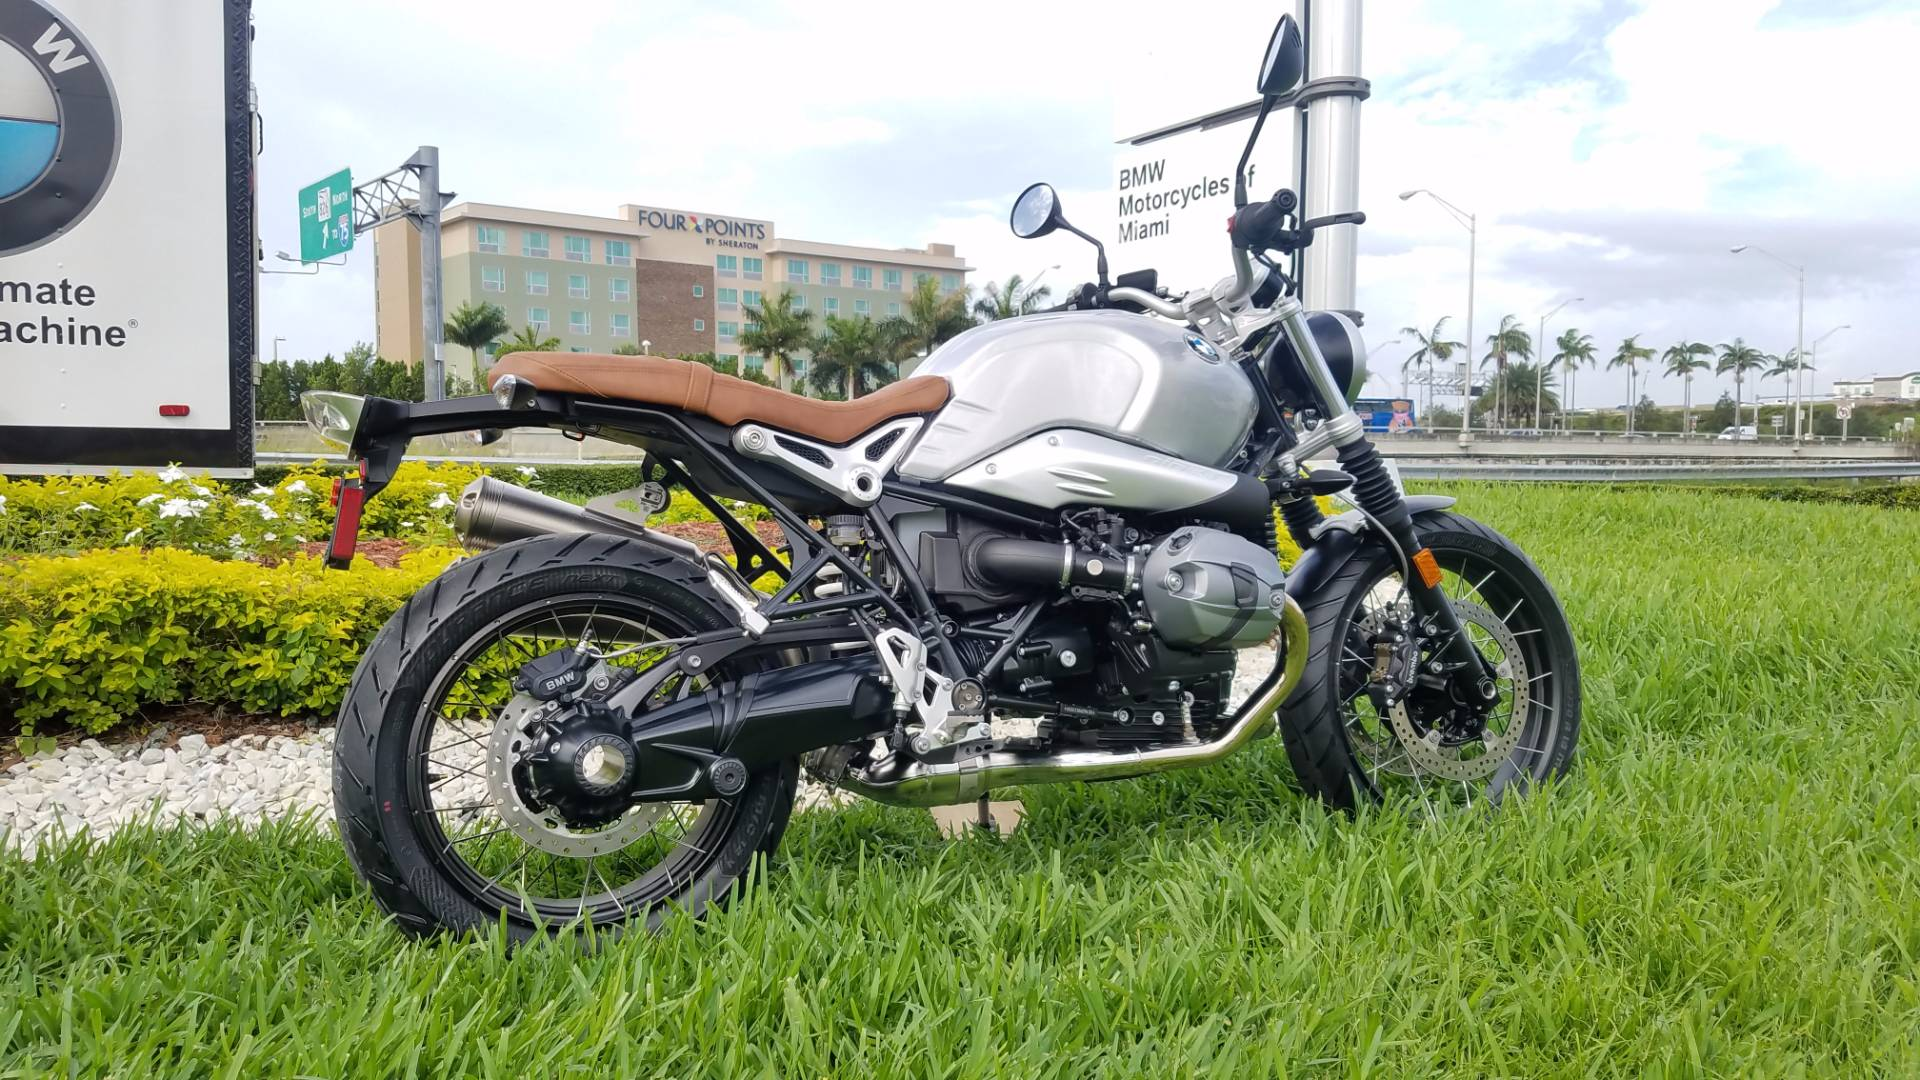 New 2017 BMW R nineT Scrambler For Sale, BMW R nineT Scrambler Brushed aluminum For Sale, BMW Motorcycle Scrambler, new BMW Scrambler, New BMW Motorcycle